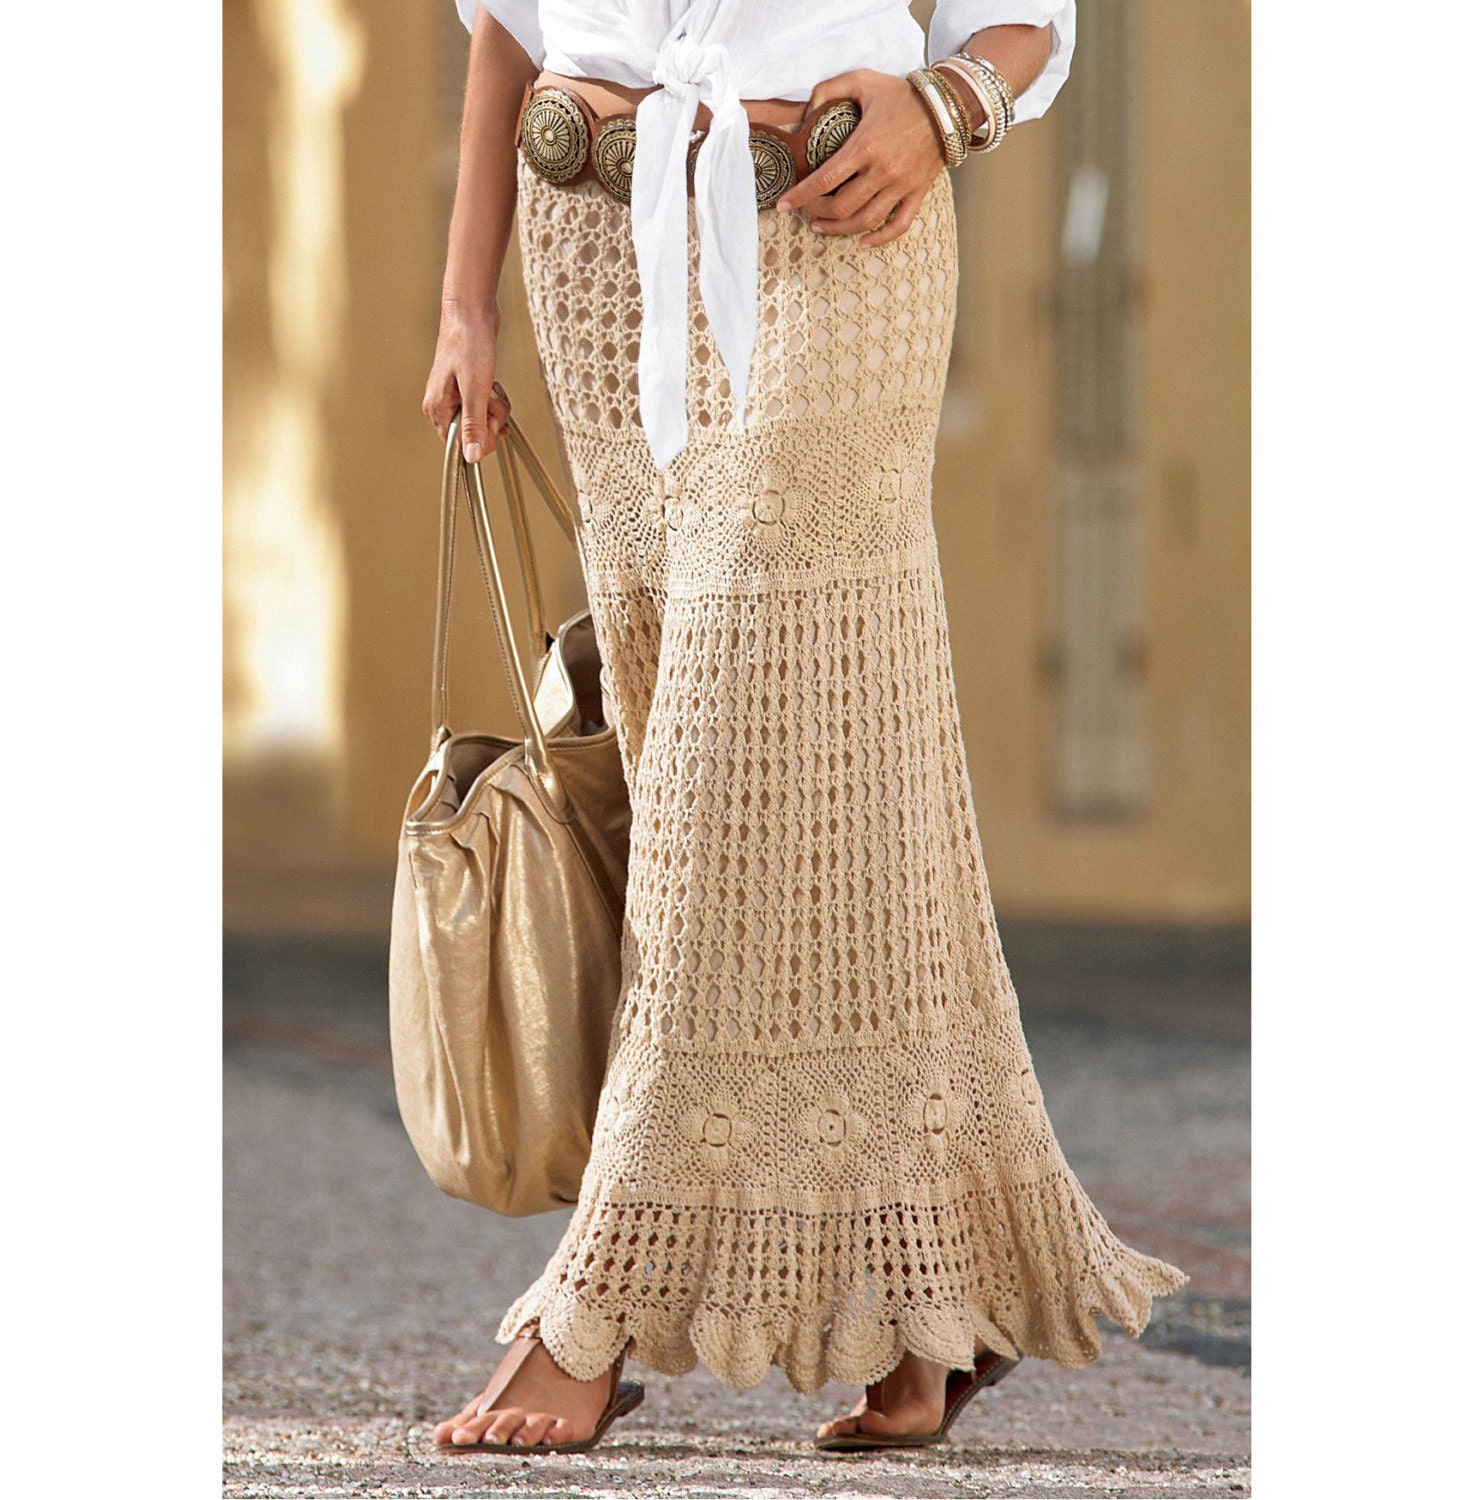 Crochet Patterns Skirt : Crochet maxi skirt PATTERN crochet skirt by CONCEPTcreative